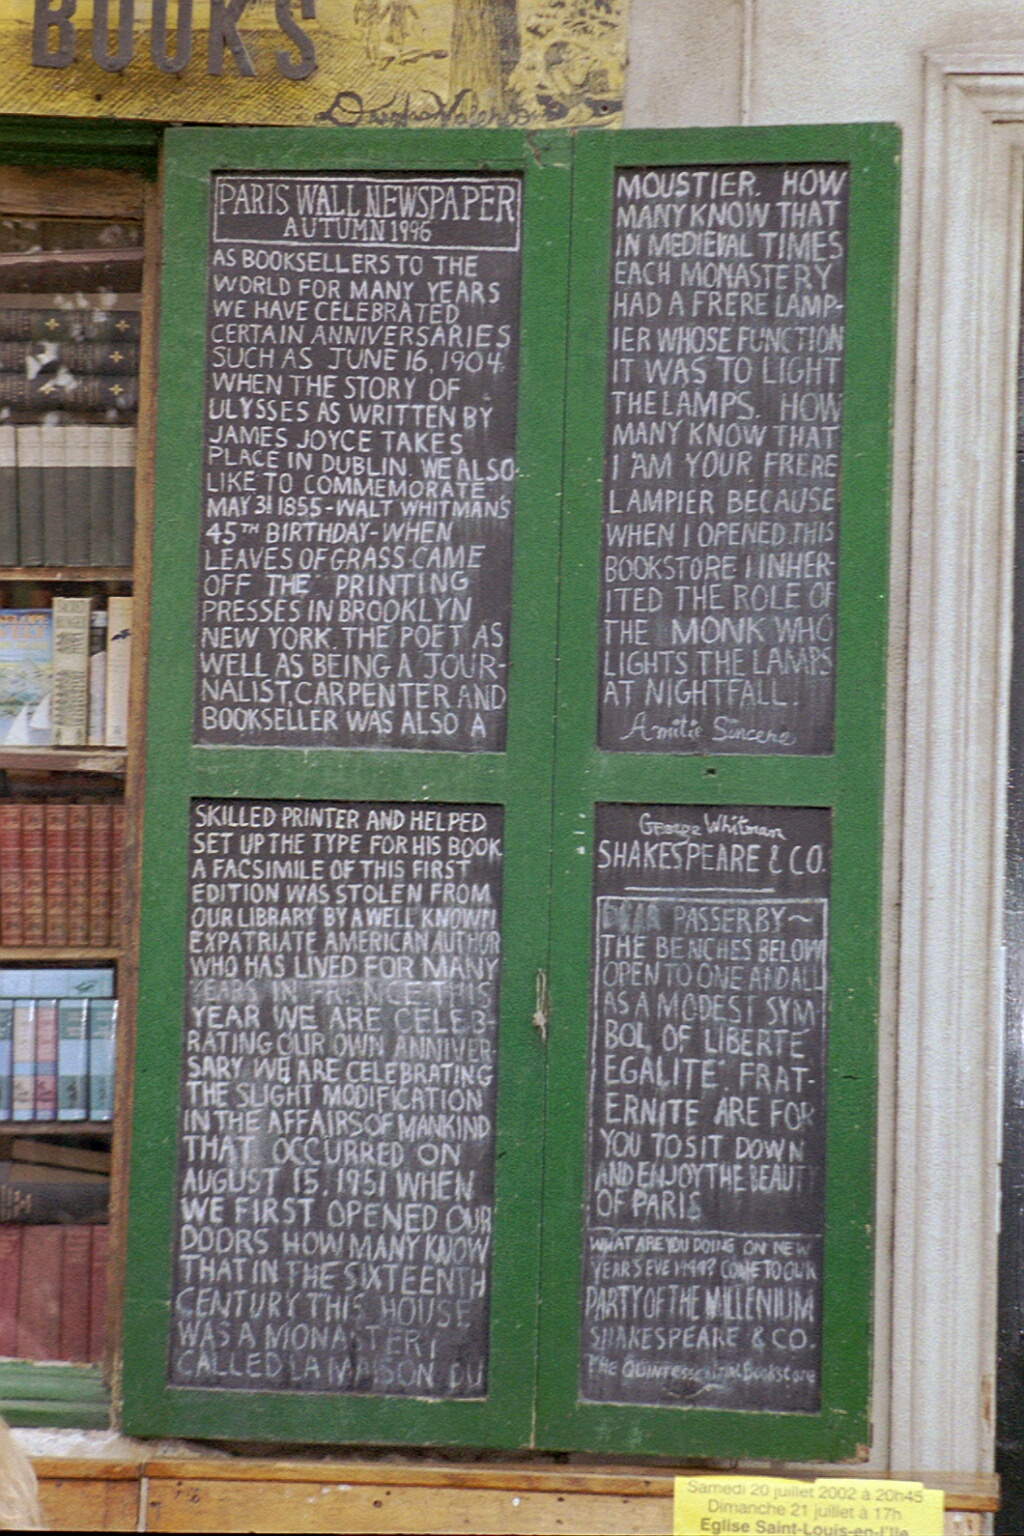 Paris Wall Newspaper, Shakespeare and Co